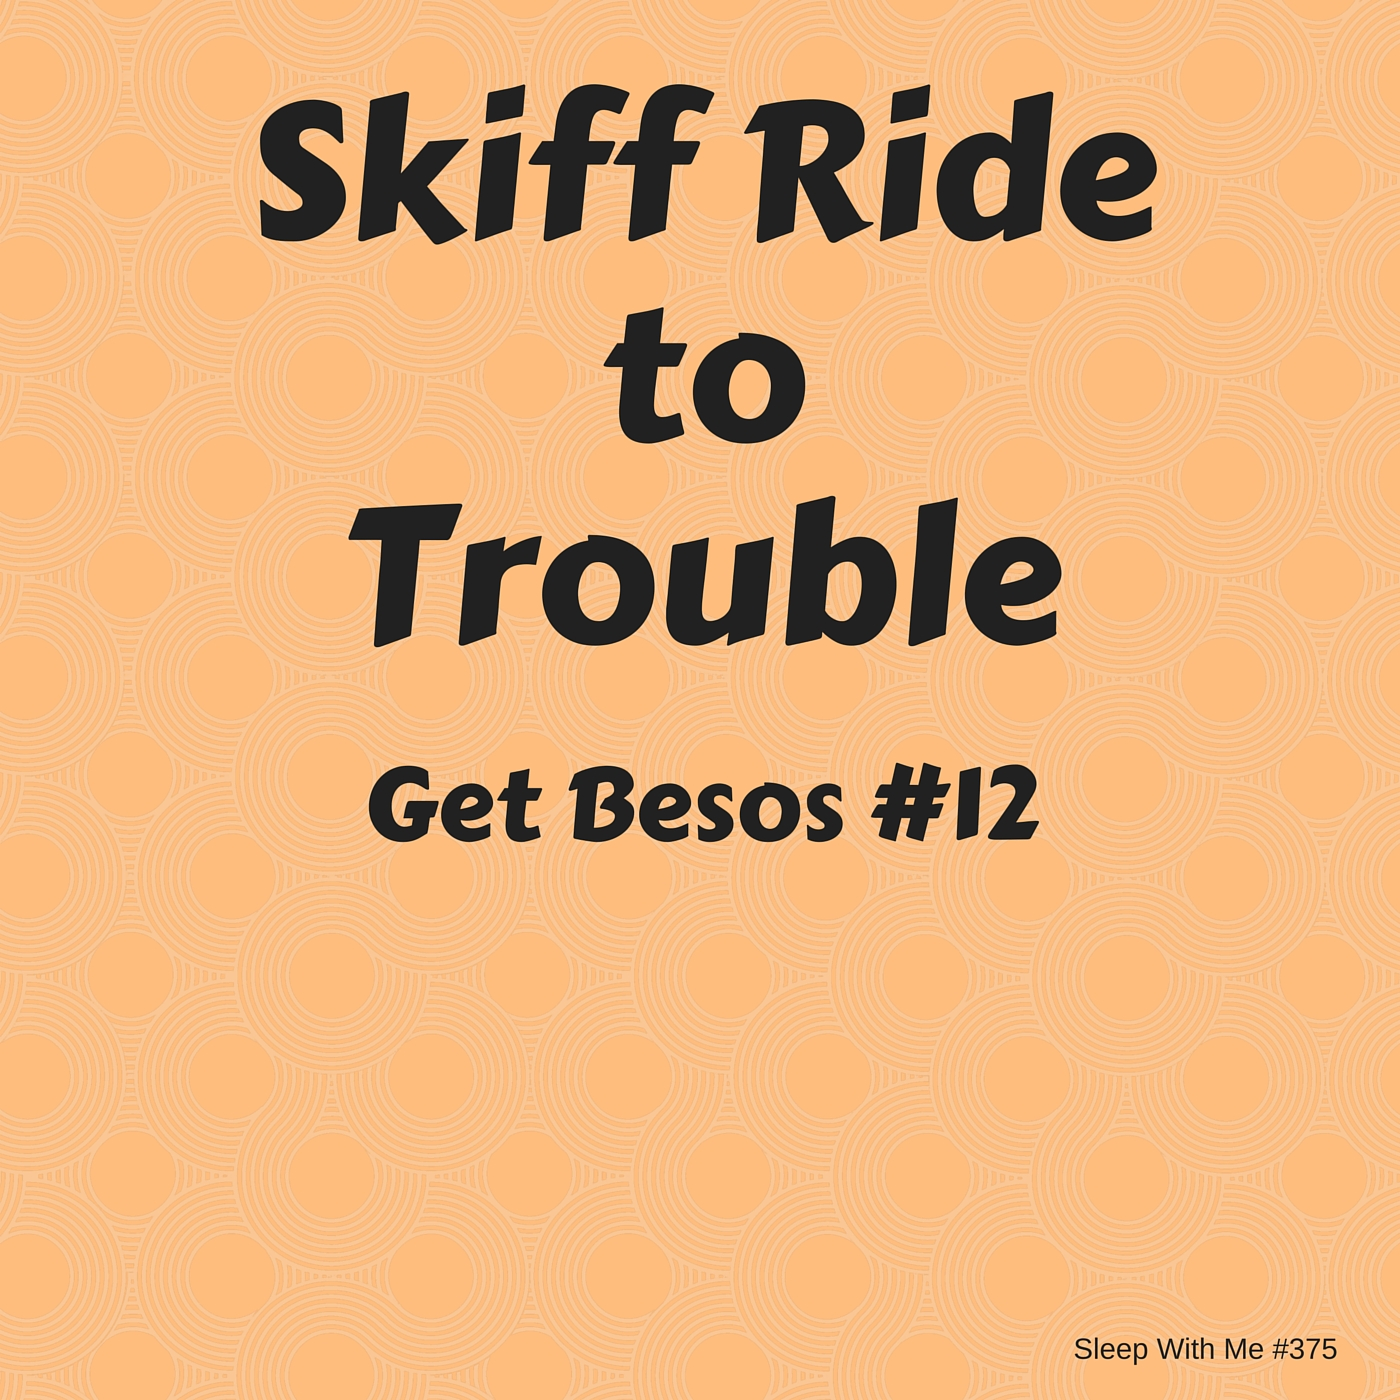 Skiff Ride to Trouble | Get Besos #12 | Sleep With Me #375